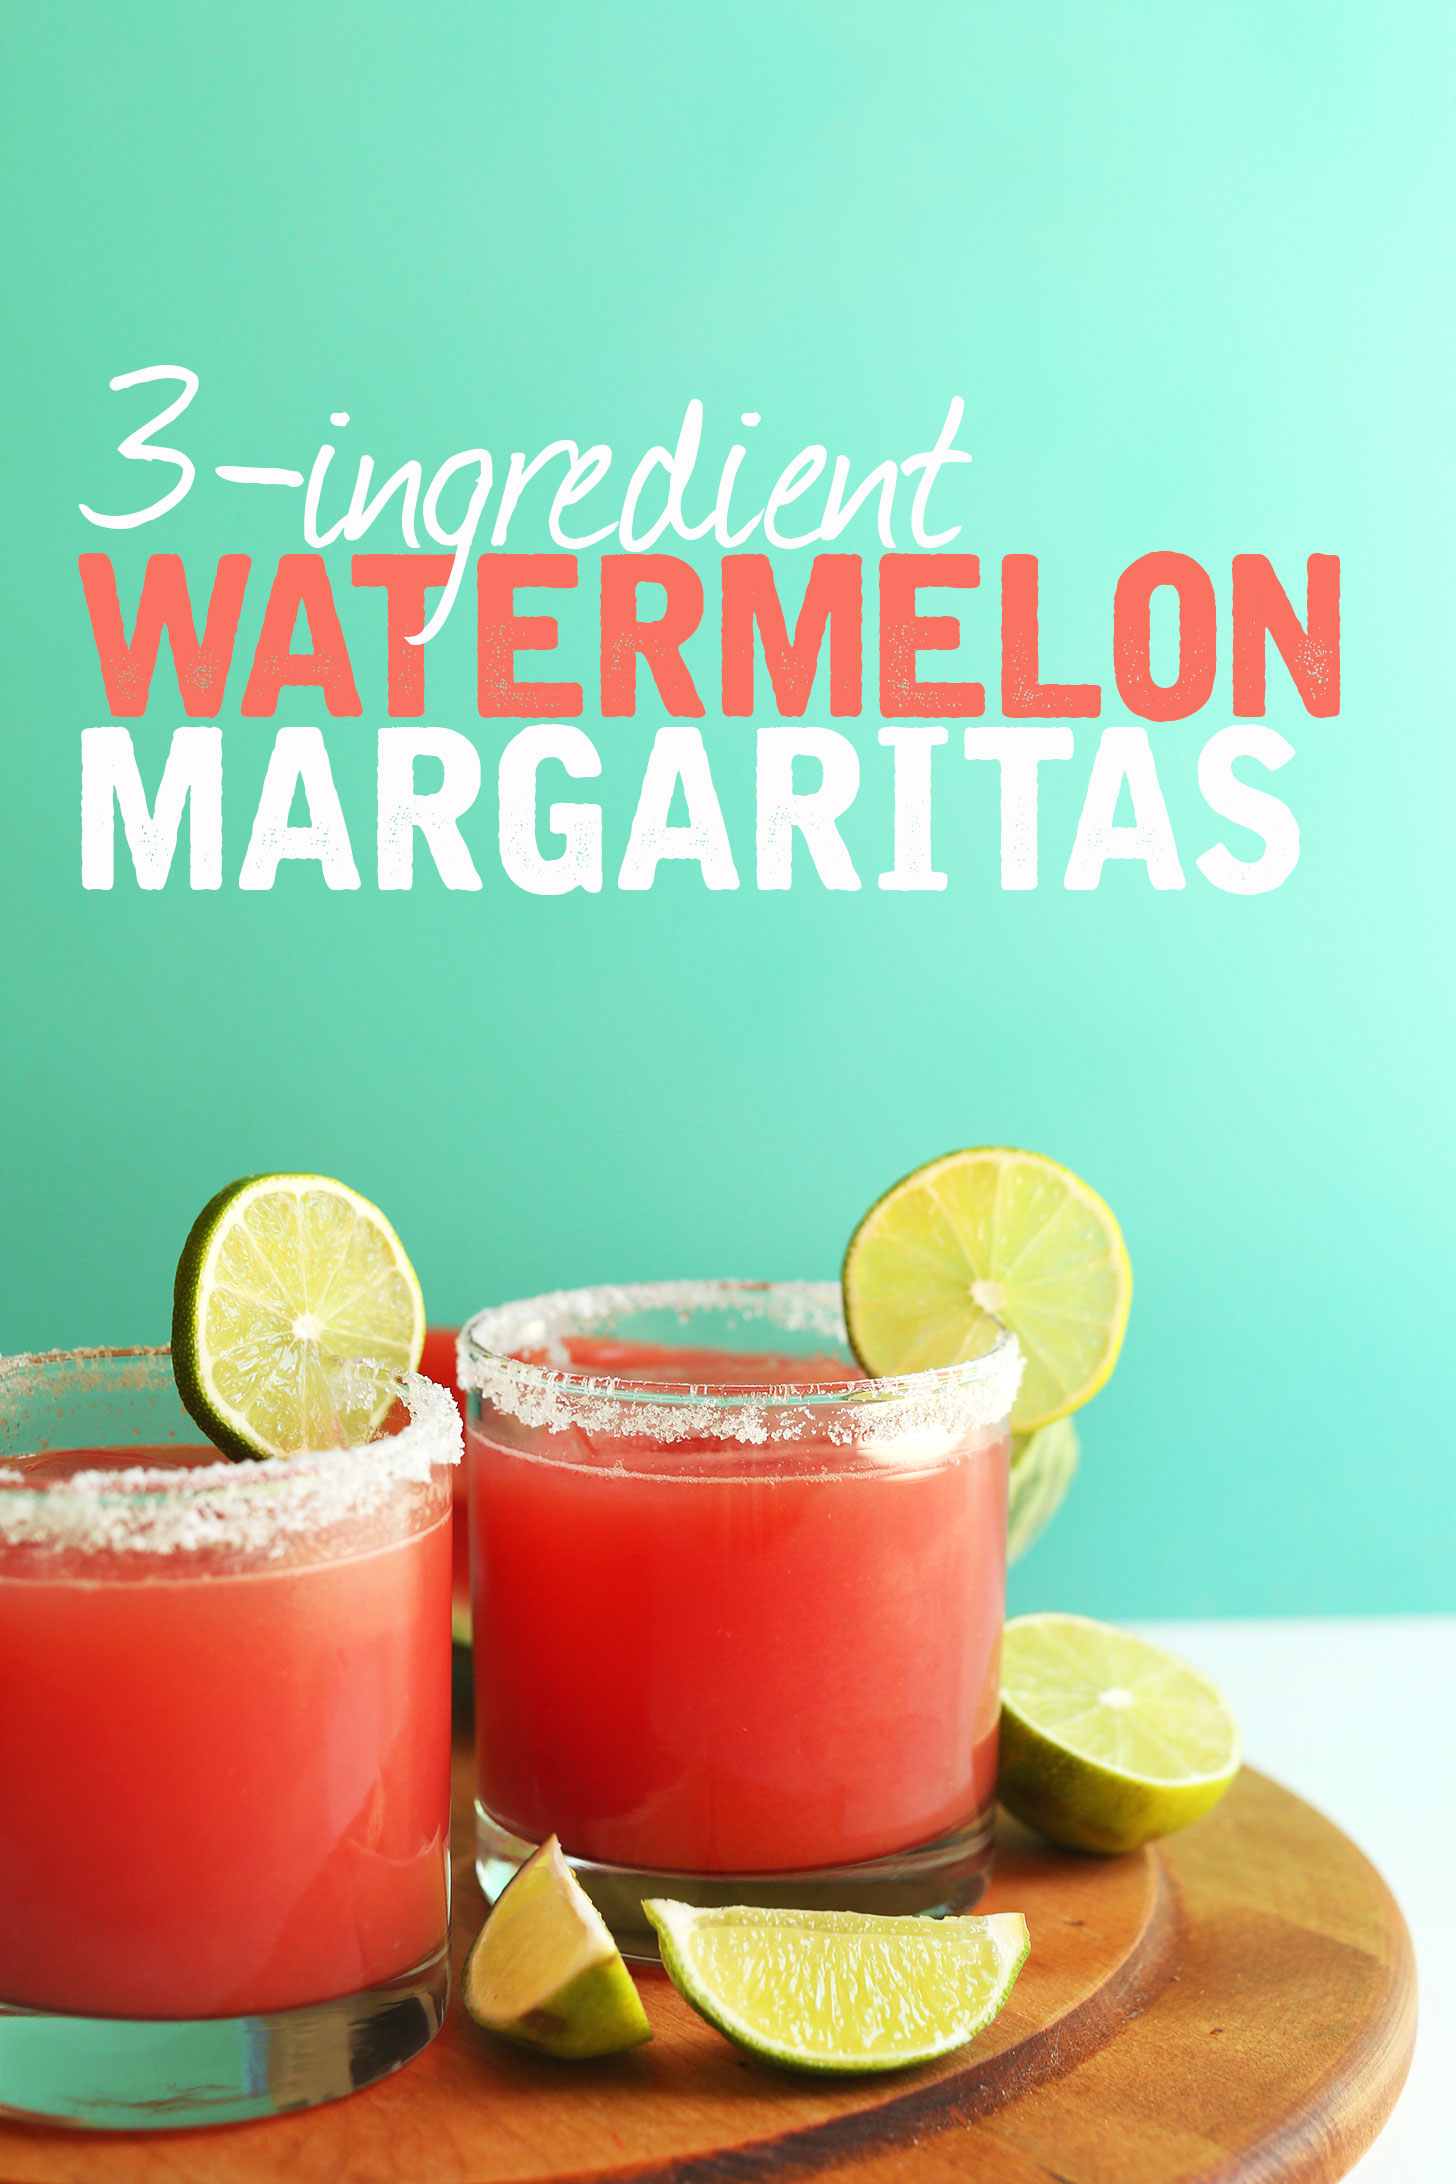 Glasses of Watermelon Margaritas for an easy vegan summer drink recipe